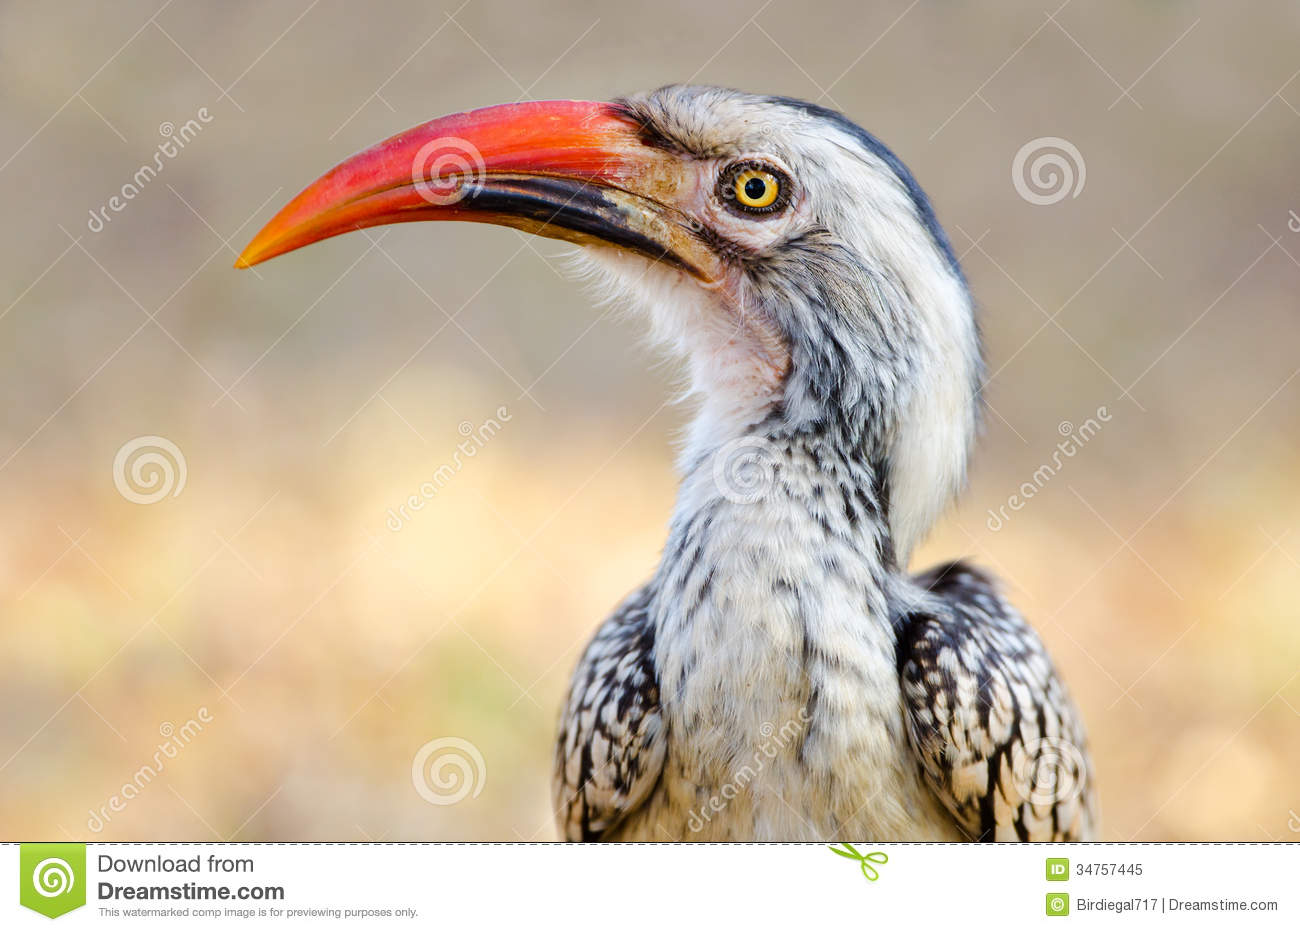 Red-billed Hornbill clipart #8, Download drawings